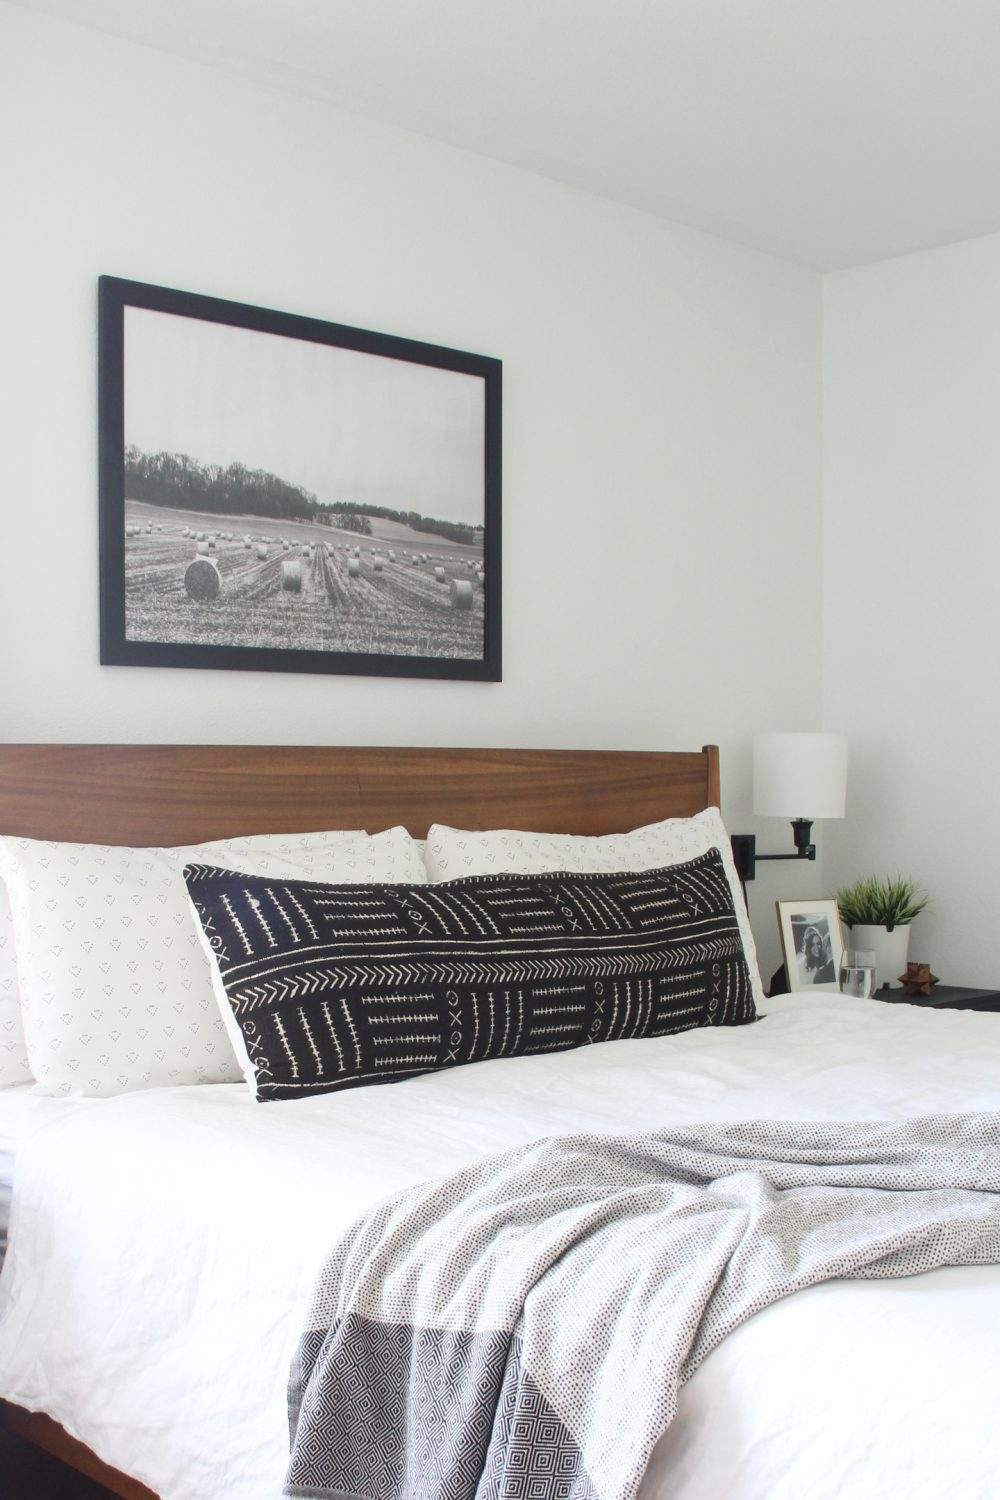 Large art above bed in master bedroom | Lumber Loves Lace | lumberloveslace.com